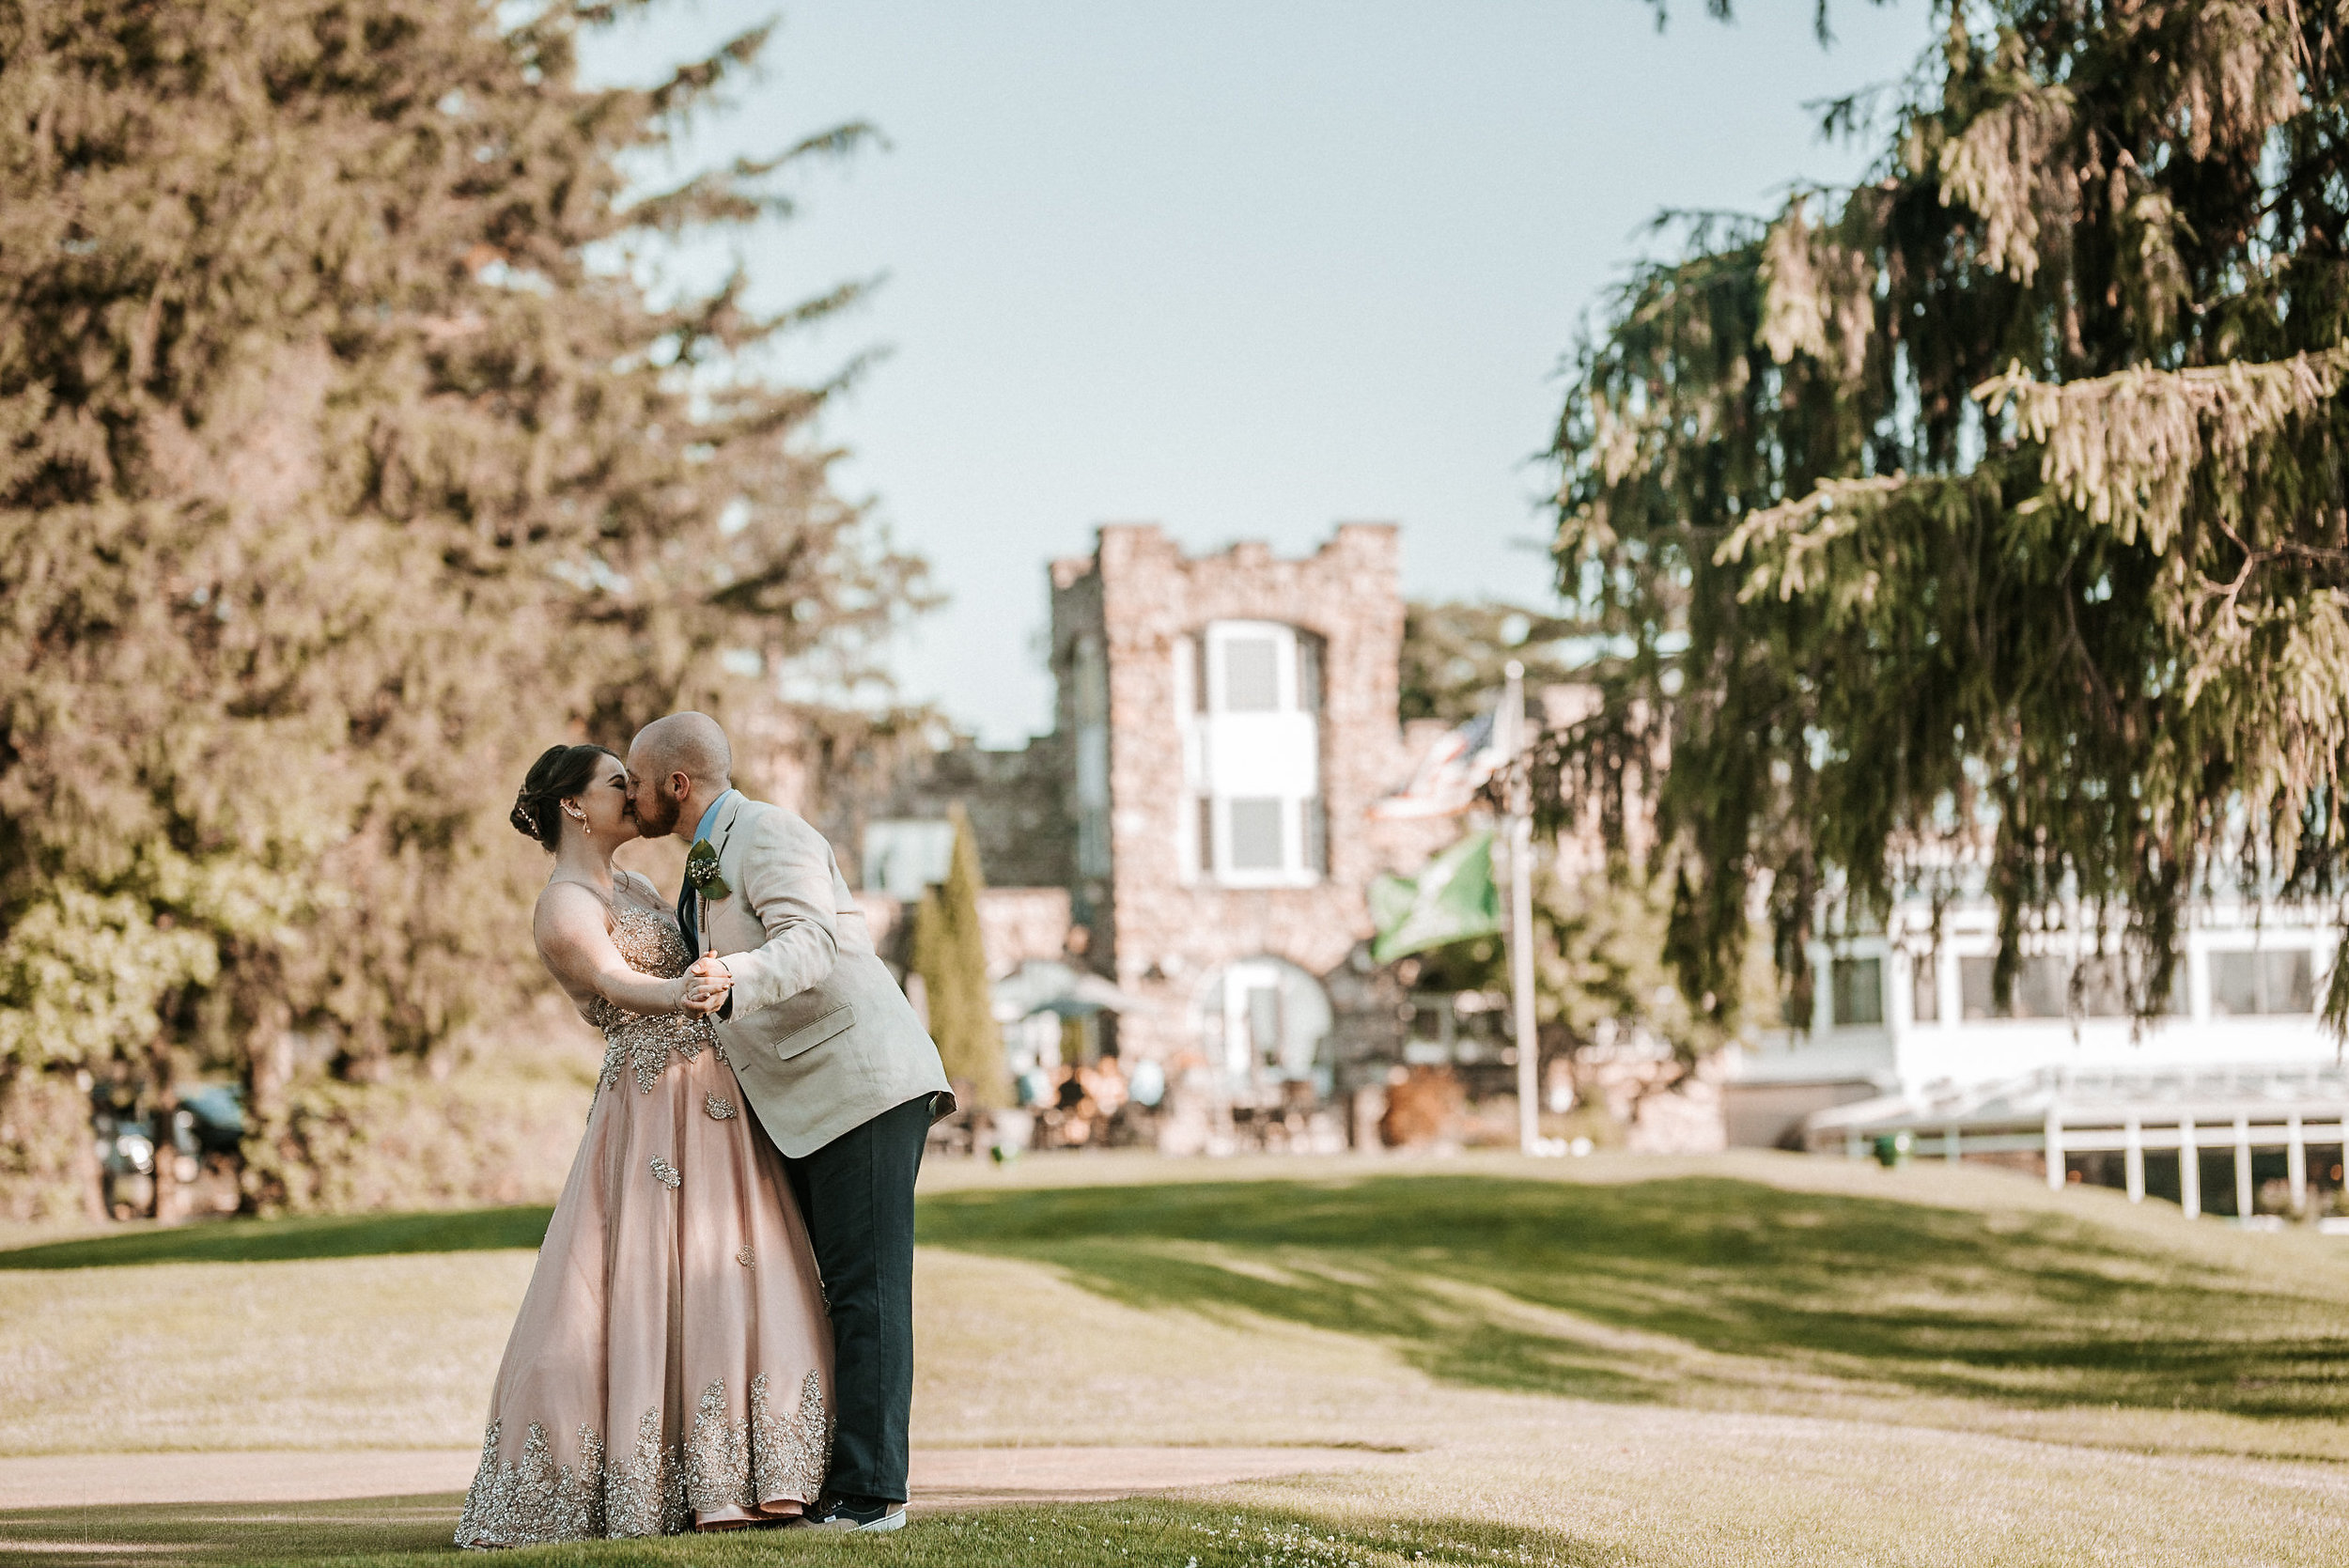 Bride and groom kissing in front of country club castle